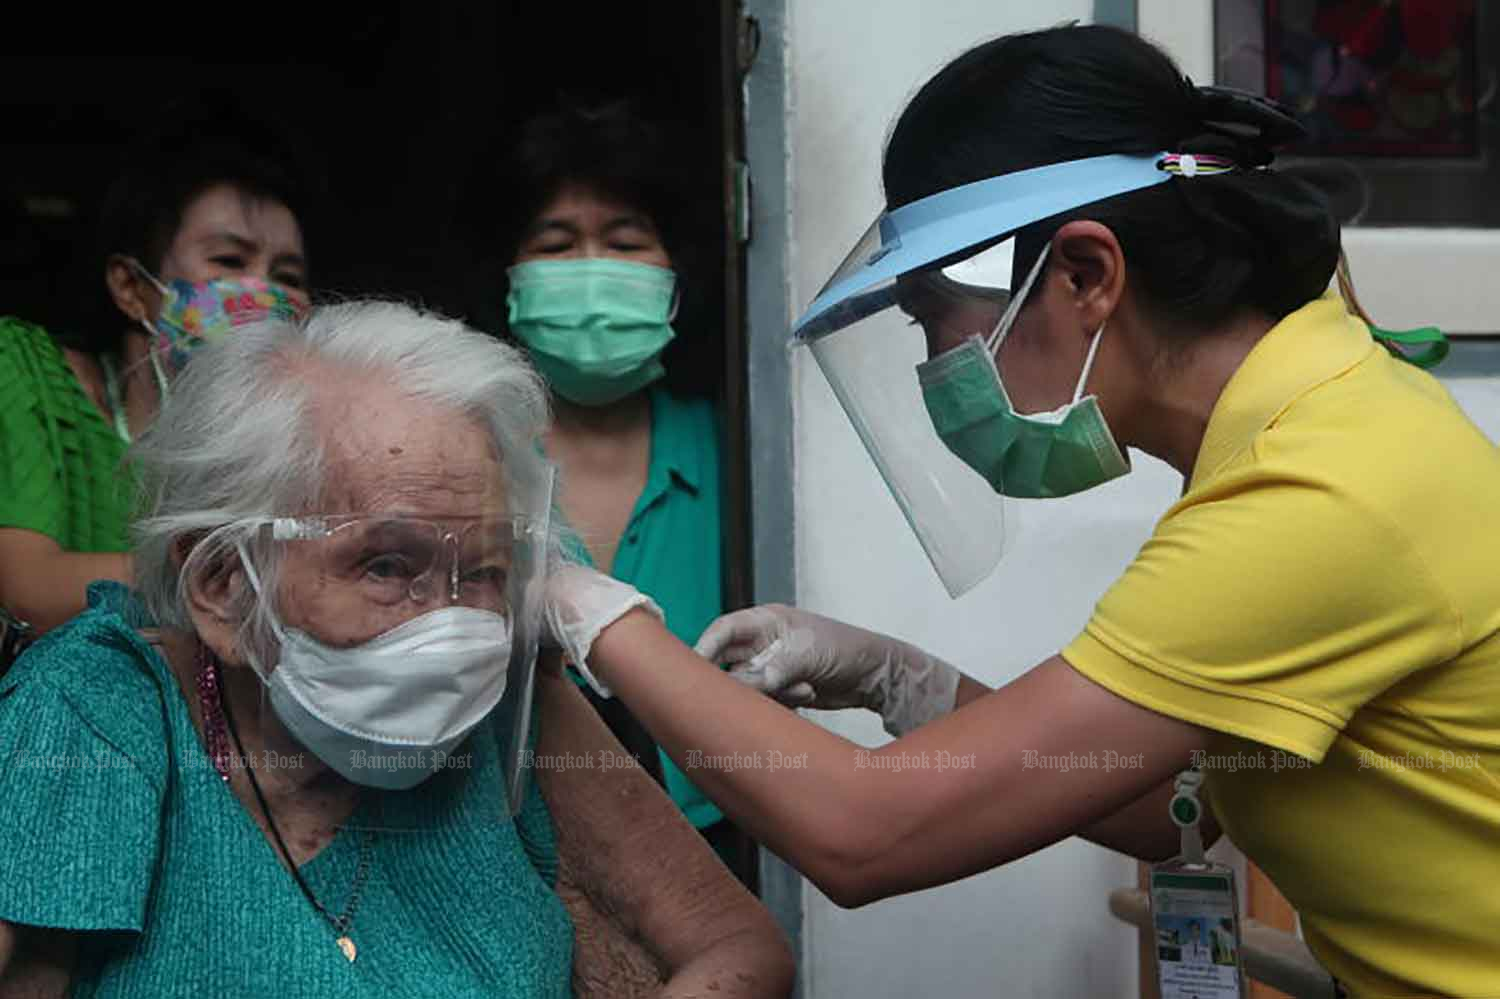 A health worker gives the AstraZeneca vaccine to a bedridden patient, Malai Phensut, 96, at her home in Sathon district, Bangkok, on Thursday. (Photo: Apichart Jinakul)